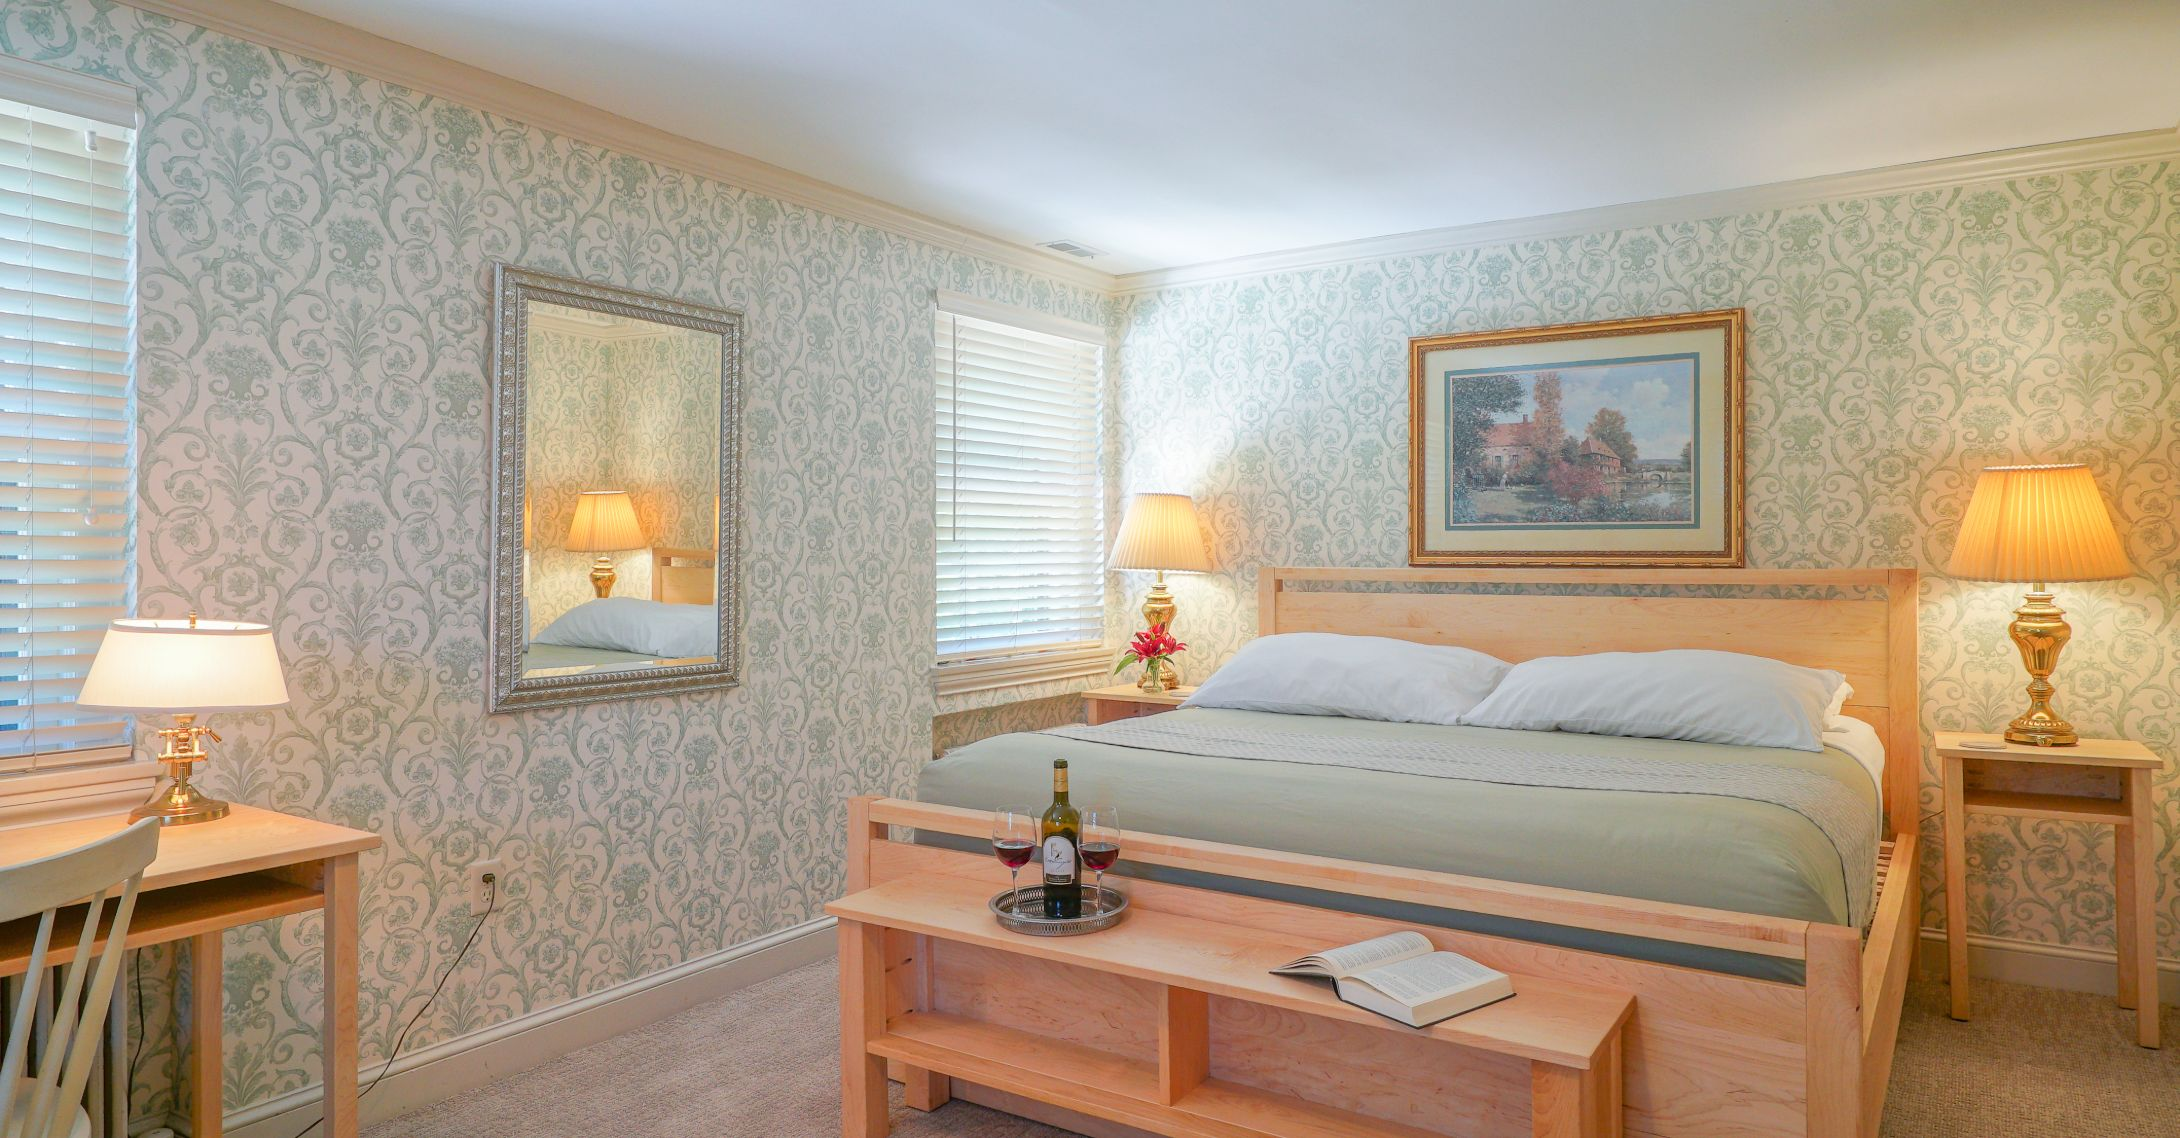 Roese Room offers exceptional eastern shore getaways